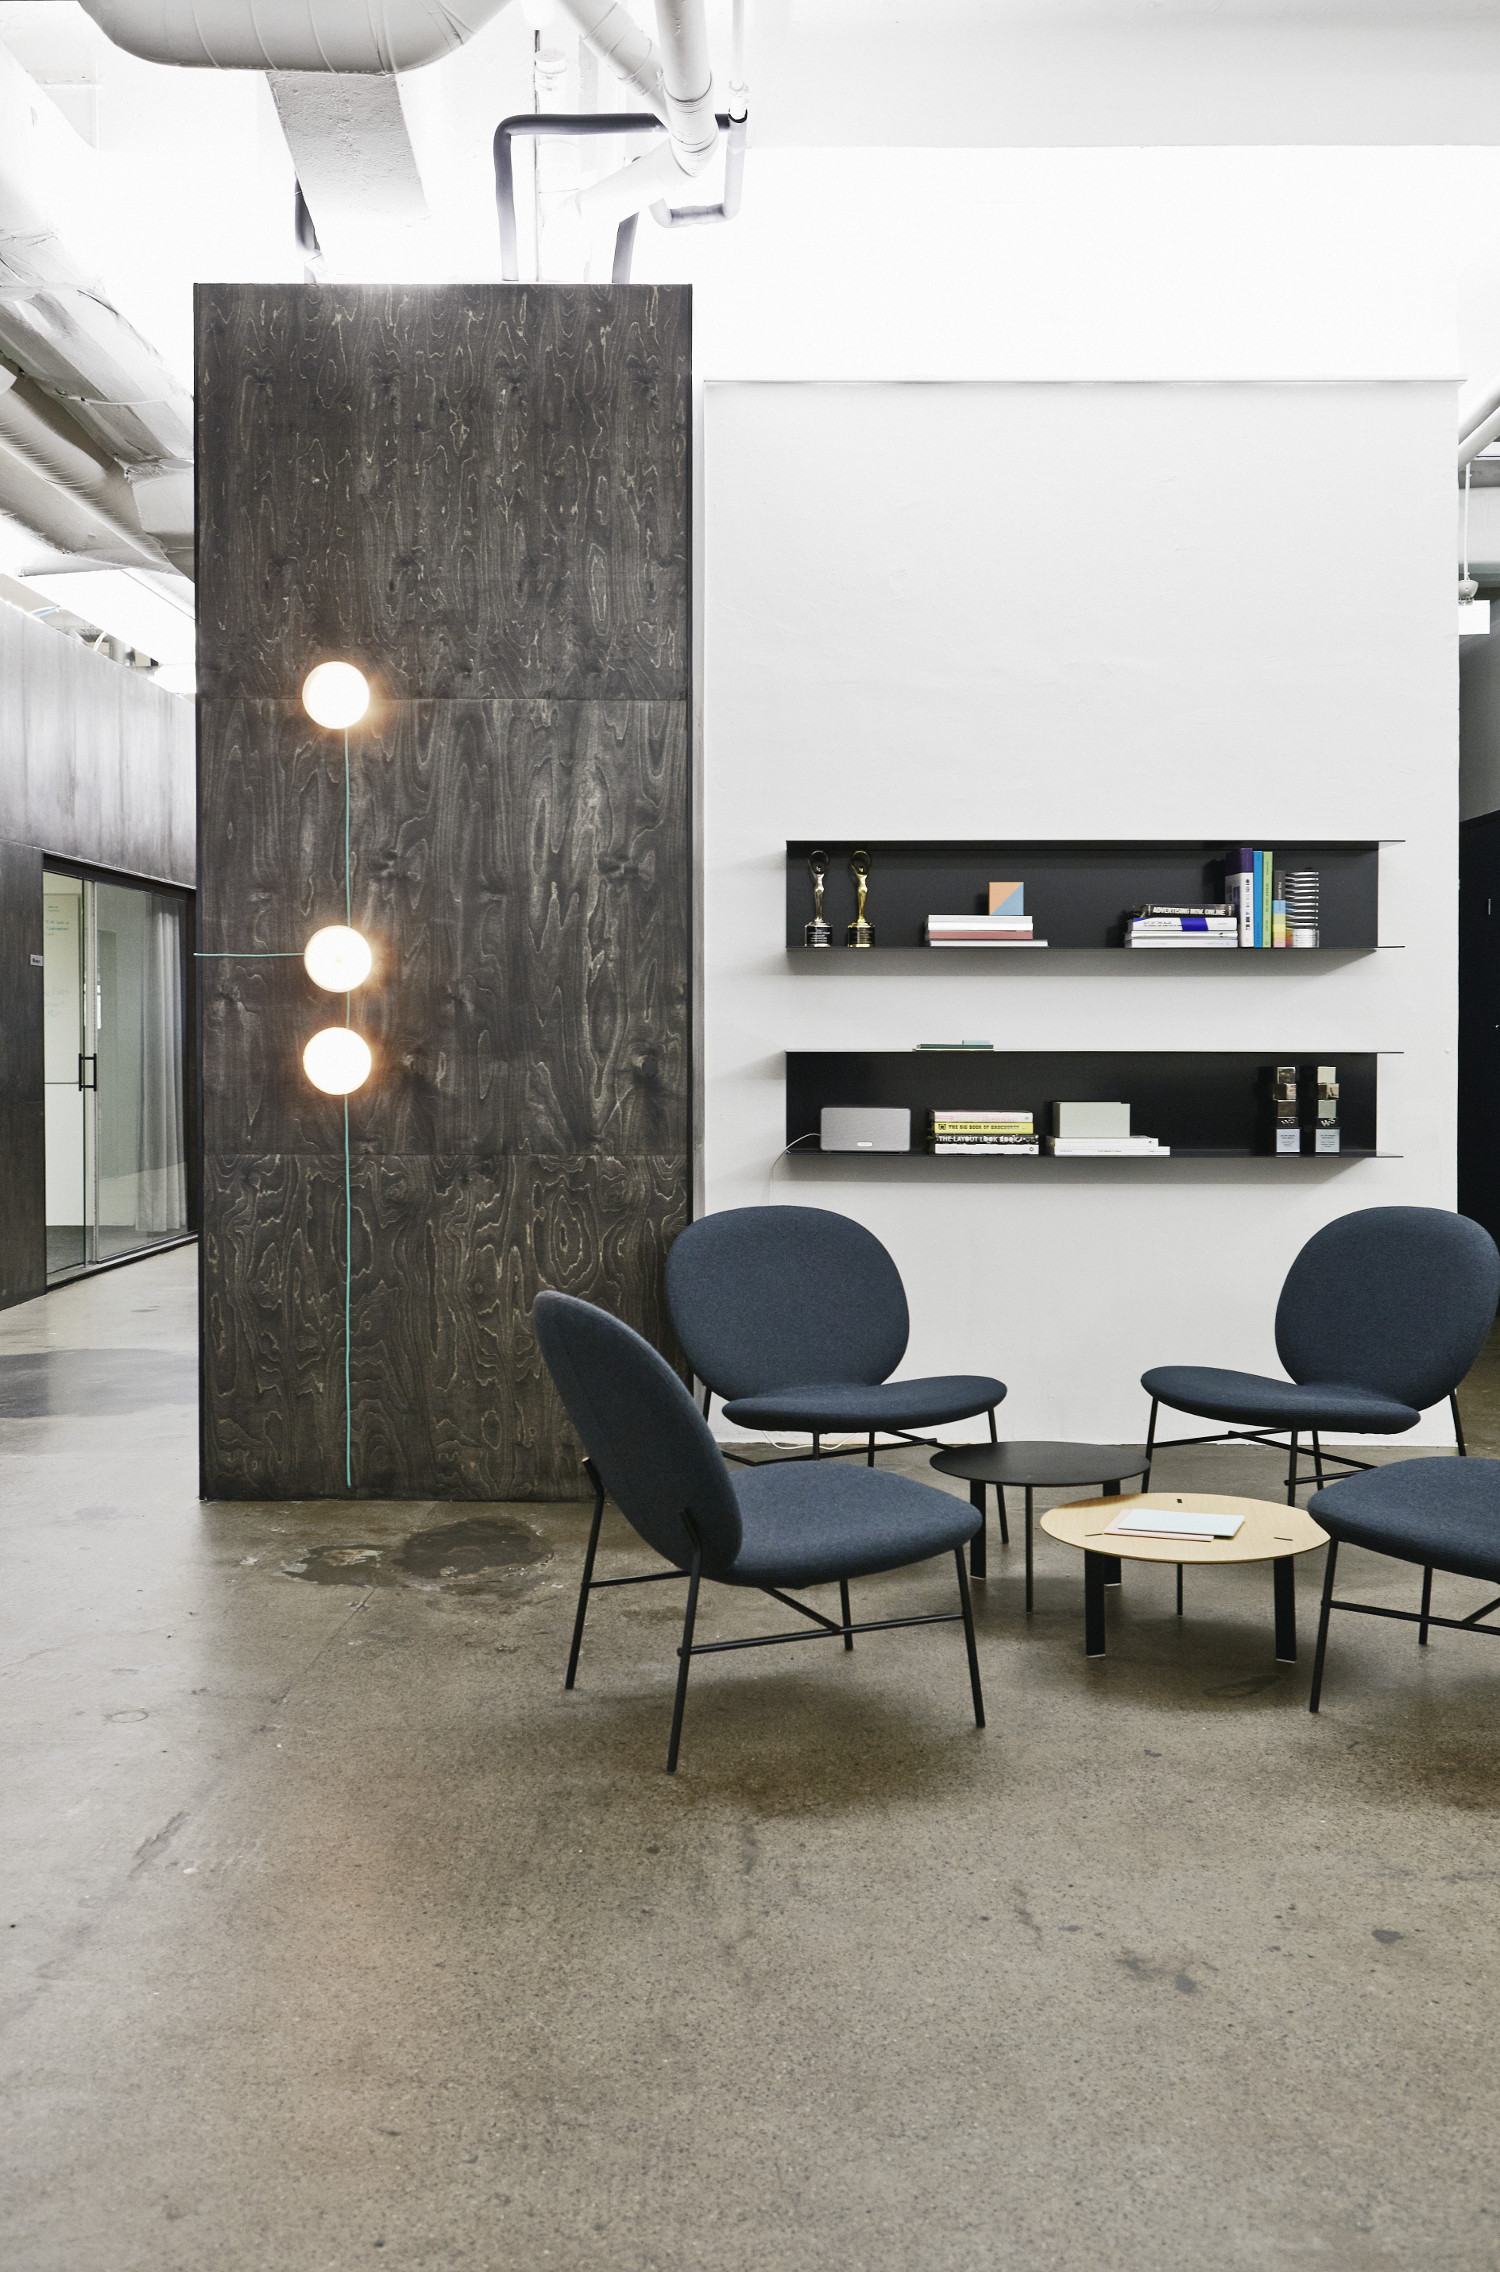 Office Design, Active Ark by Joanna Laajisto Via Design Studio 210